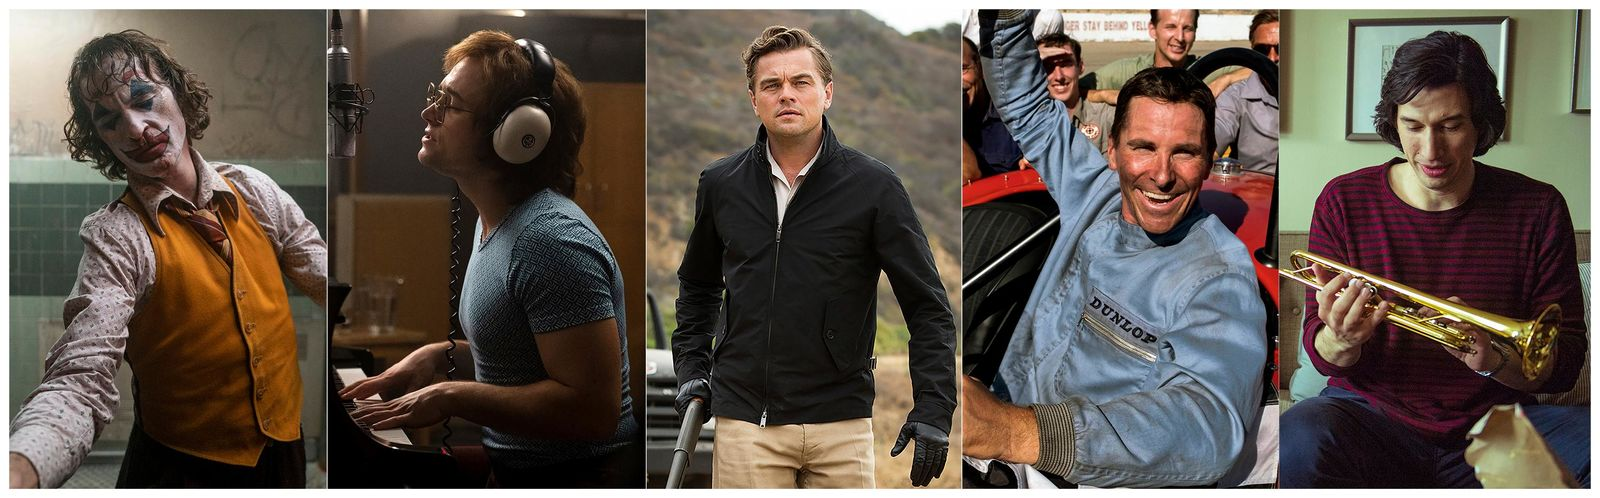 "This combination of photos shows the Screen Actors Guild Award nominees for outstanding performance by a male actor in a leading role, from left, Joaquin Phoenix in ""Joker,"" Taron Egerton in ""Rocketman,"" Leonardo DiCaprio in ""Once Upon a Time...in Hollywood,"" Christian Bale in ""Ford v Ferrari."" (Warner Bros. Pictures/Paramount/Sony Pictures/20th Century Fox/Netflix via AP)"